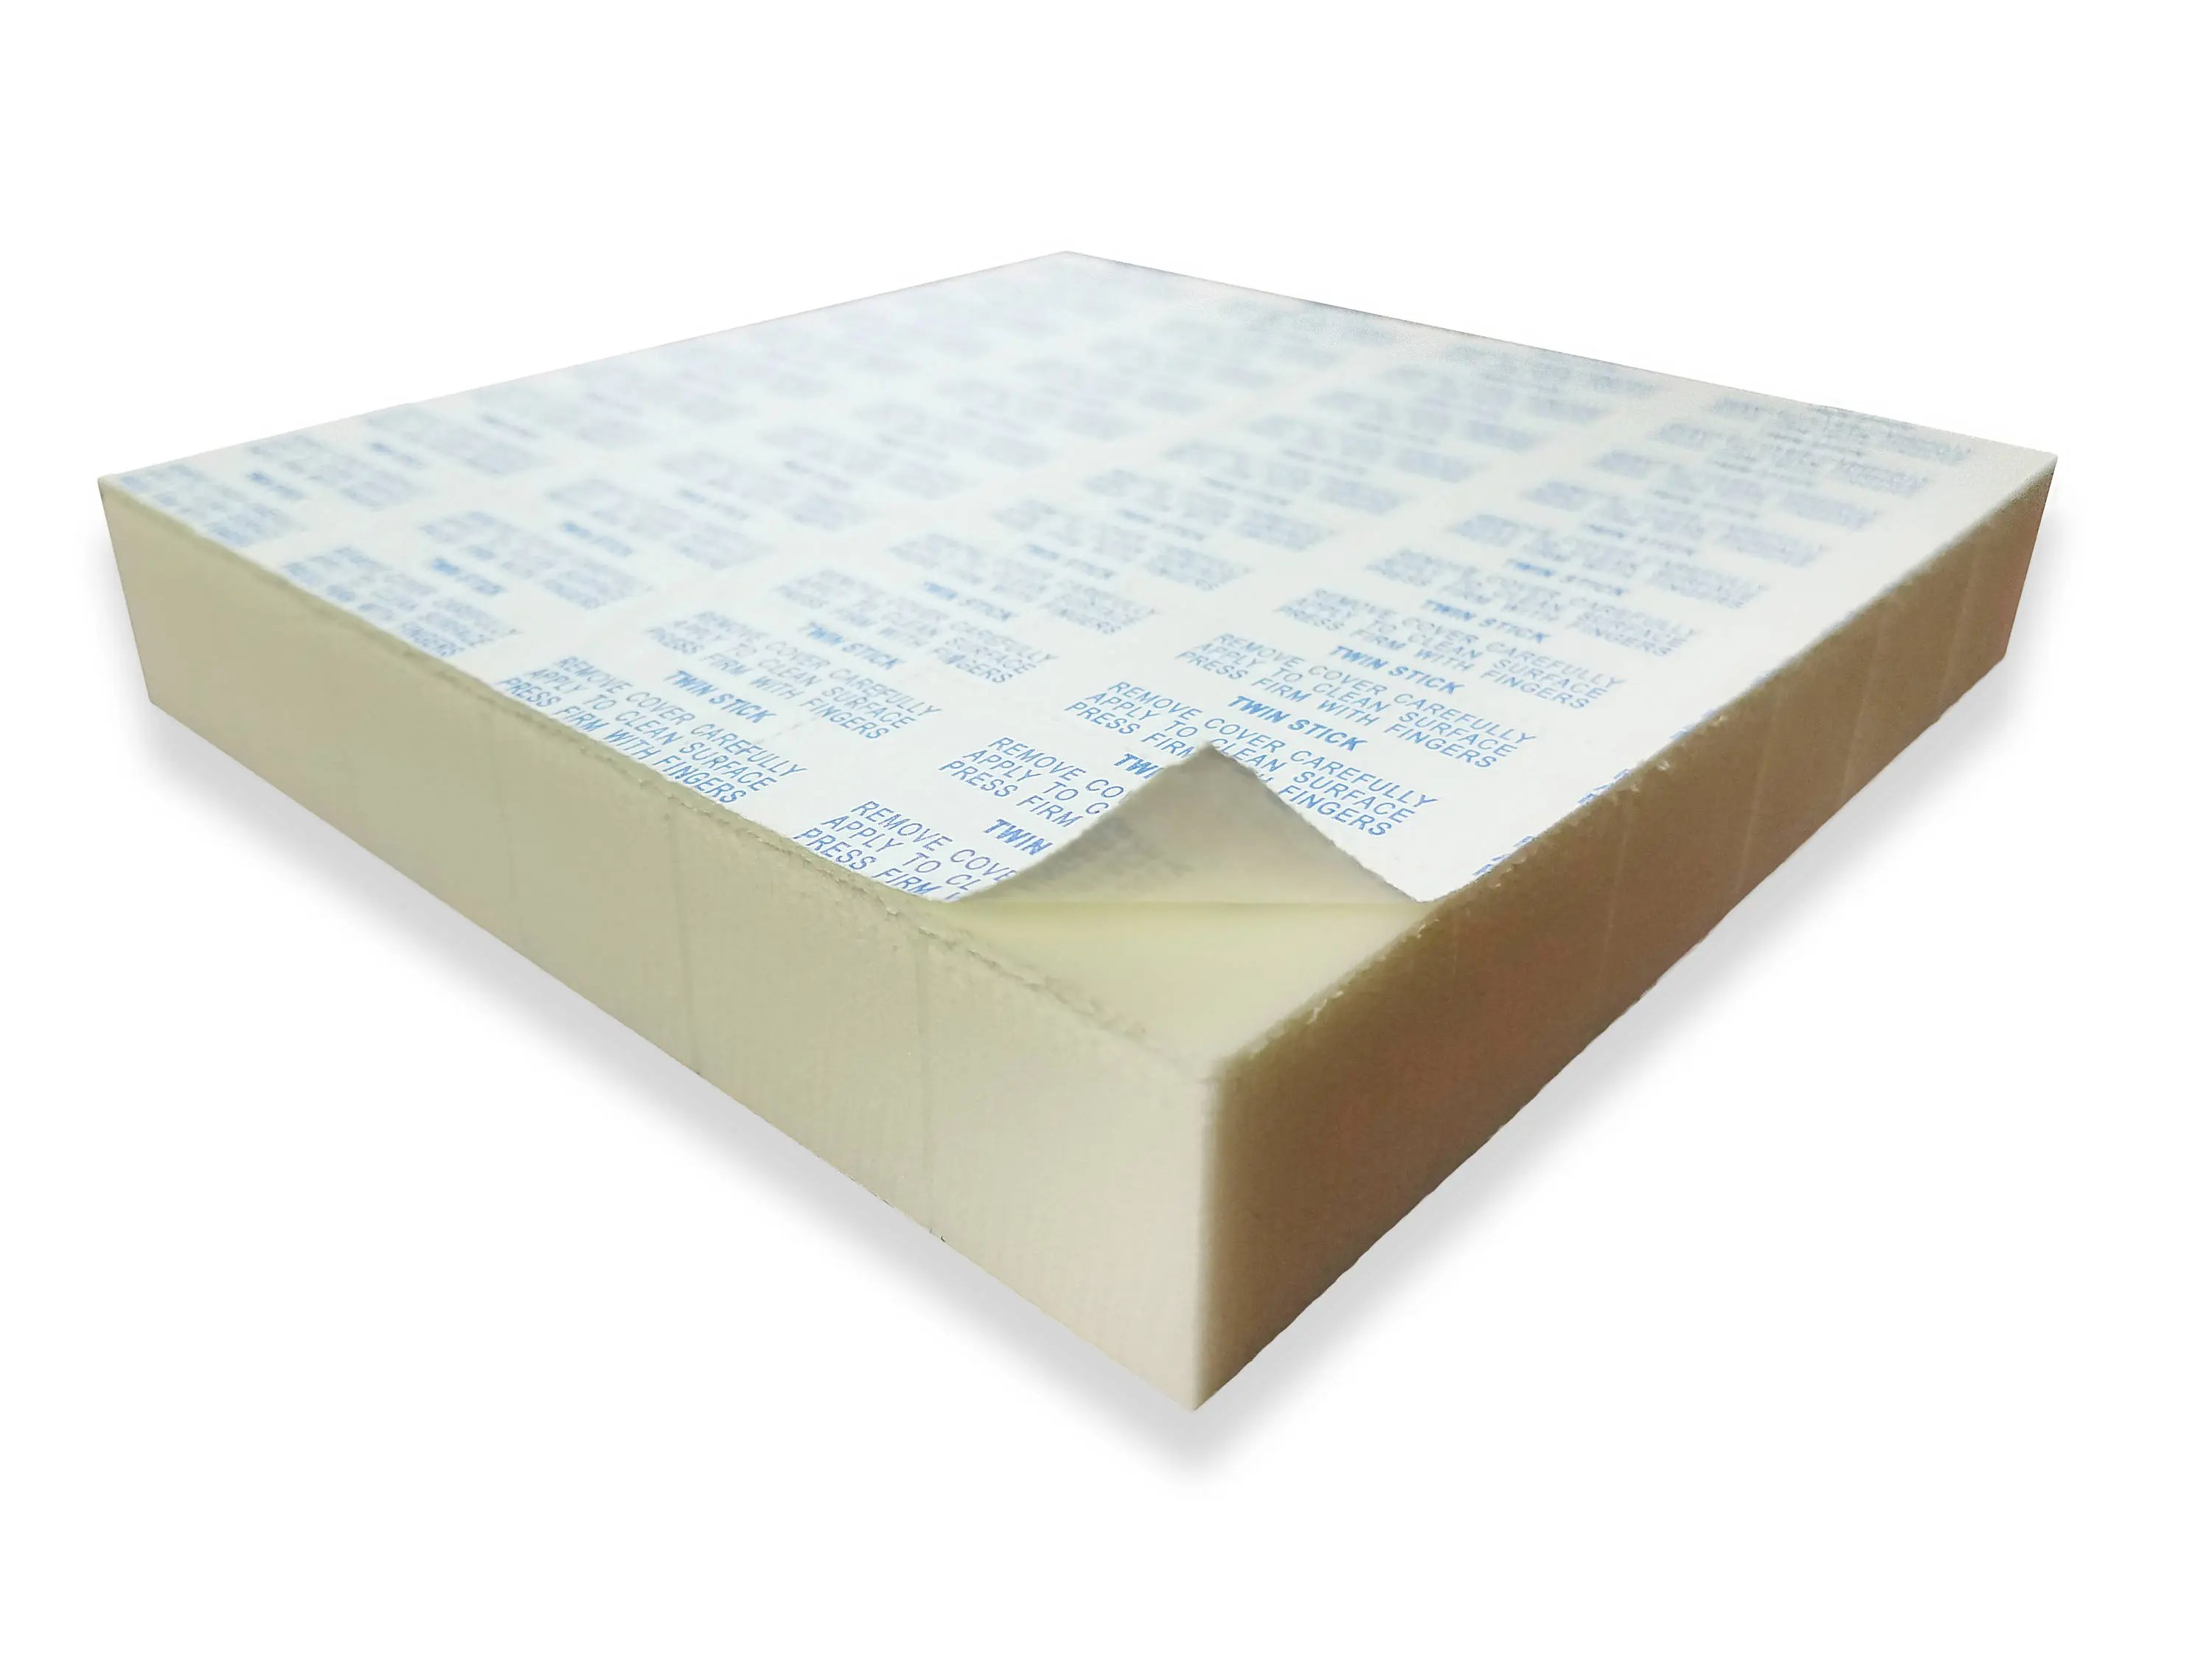 Different Types Of Foam Set Of 12 Of Vhb Double Sided Foam Squares Adhesive 1 X 1 Inch X 1 2 Inch Or 1 Inch Thick Permanent Aggressive Adhesive Dots